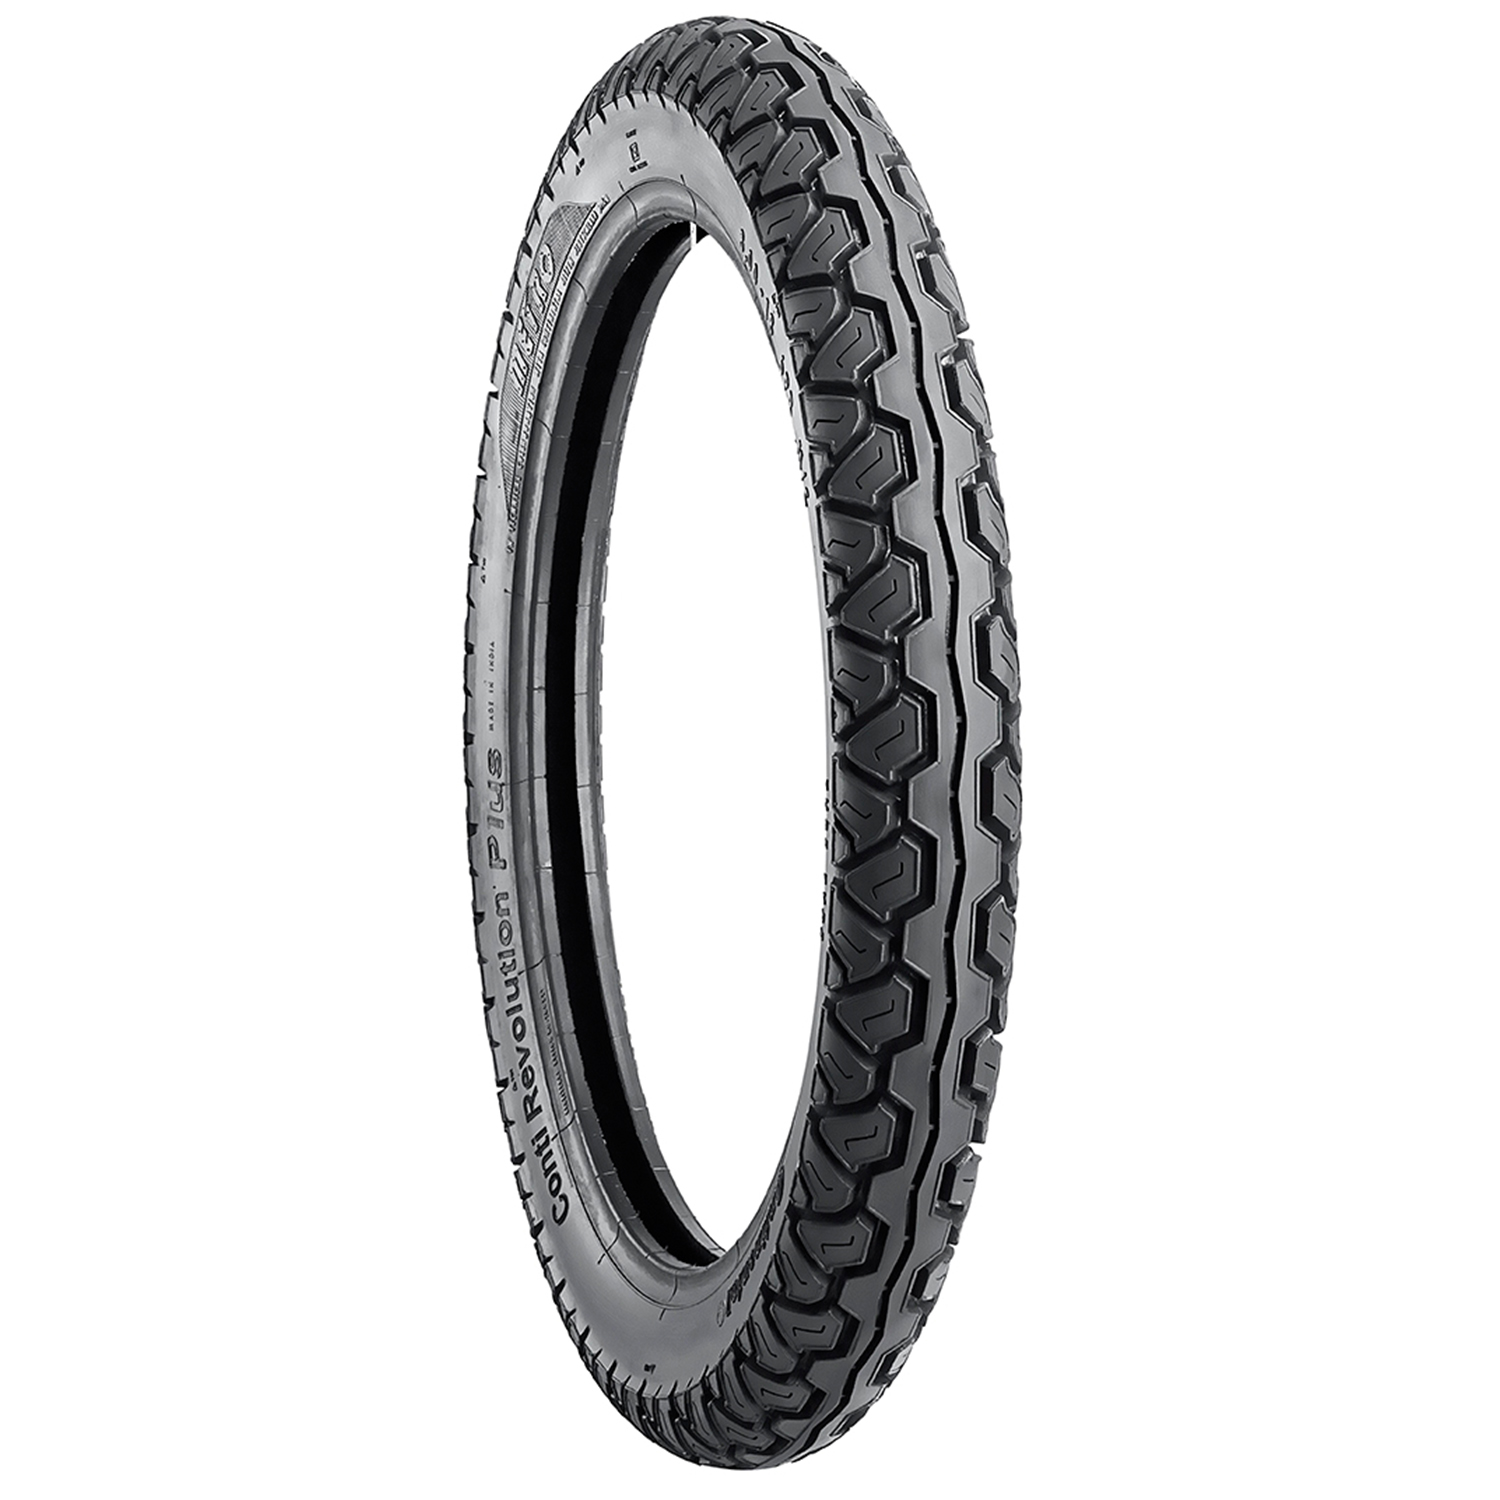 Metro CONTI REVOLUTION PLUS 3.00 18 Requires Tube Rear Two-Wheeler Tyre